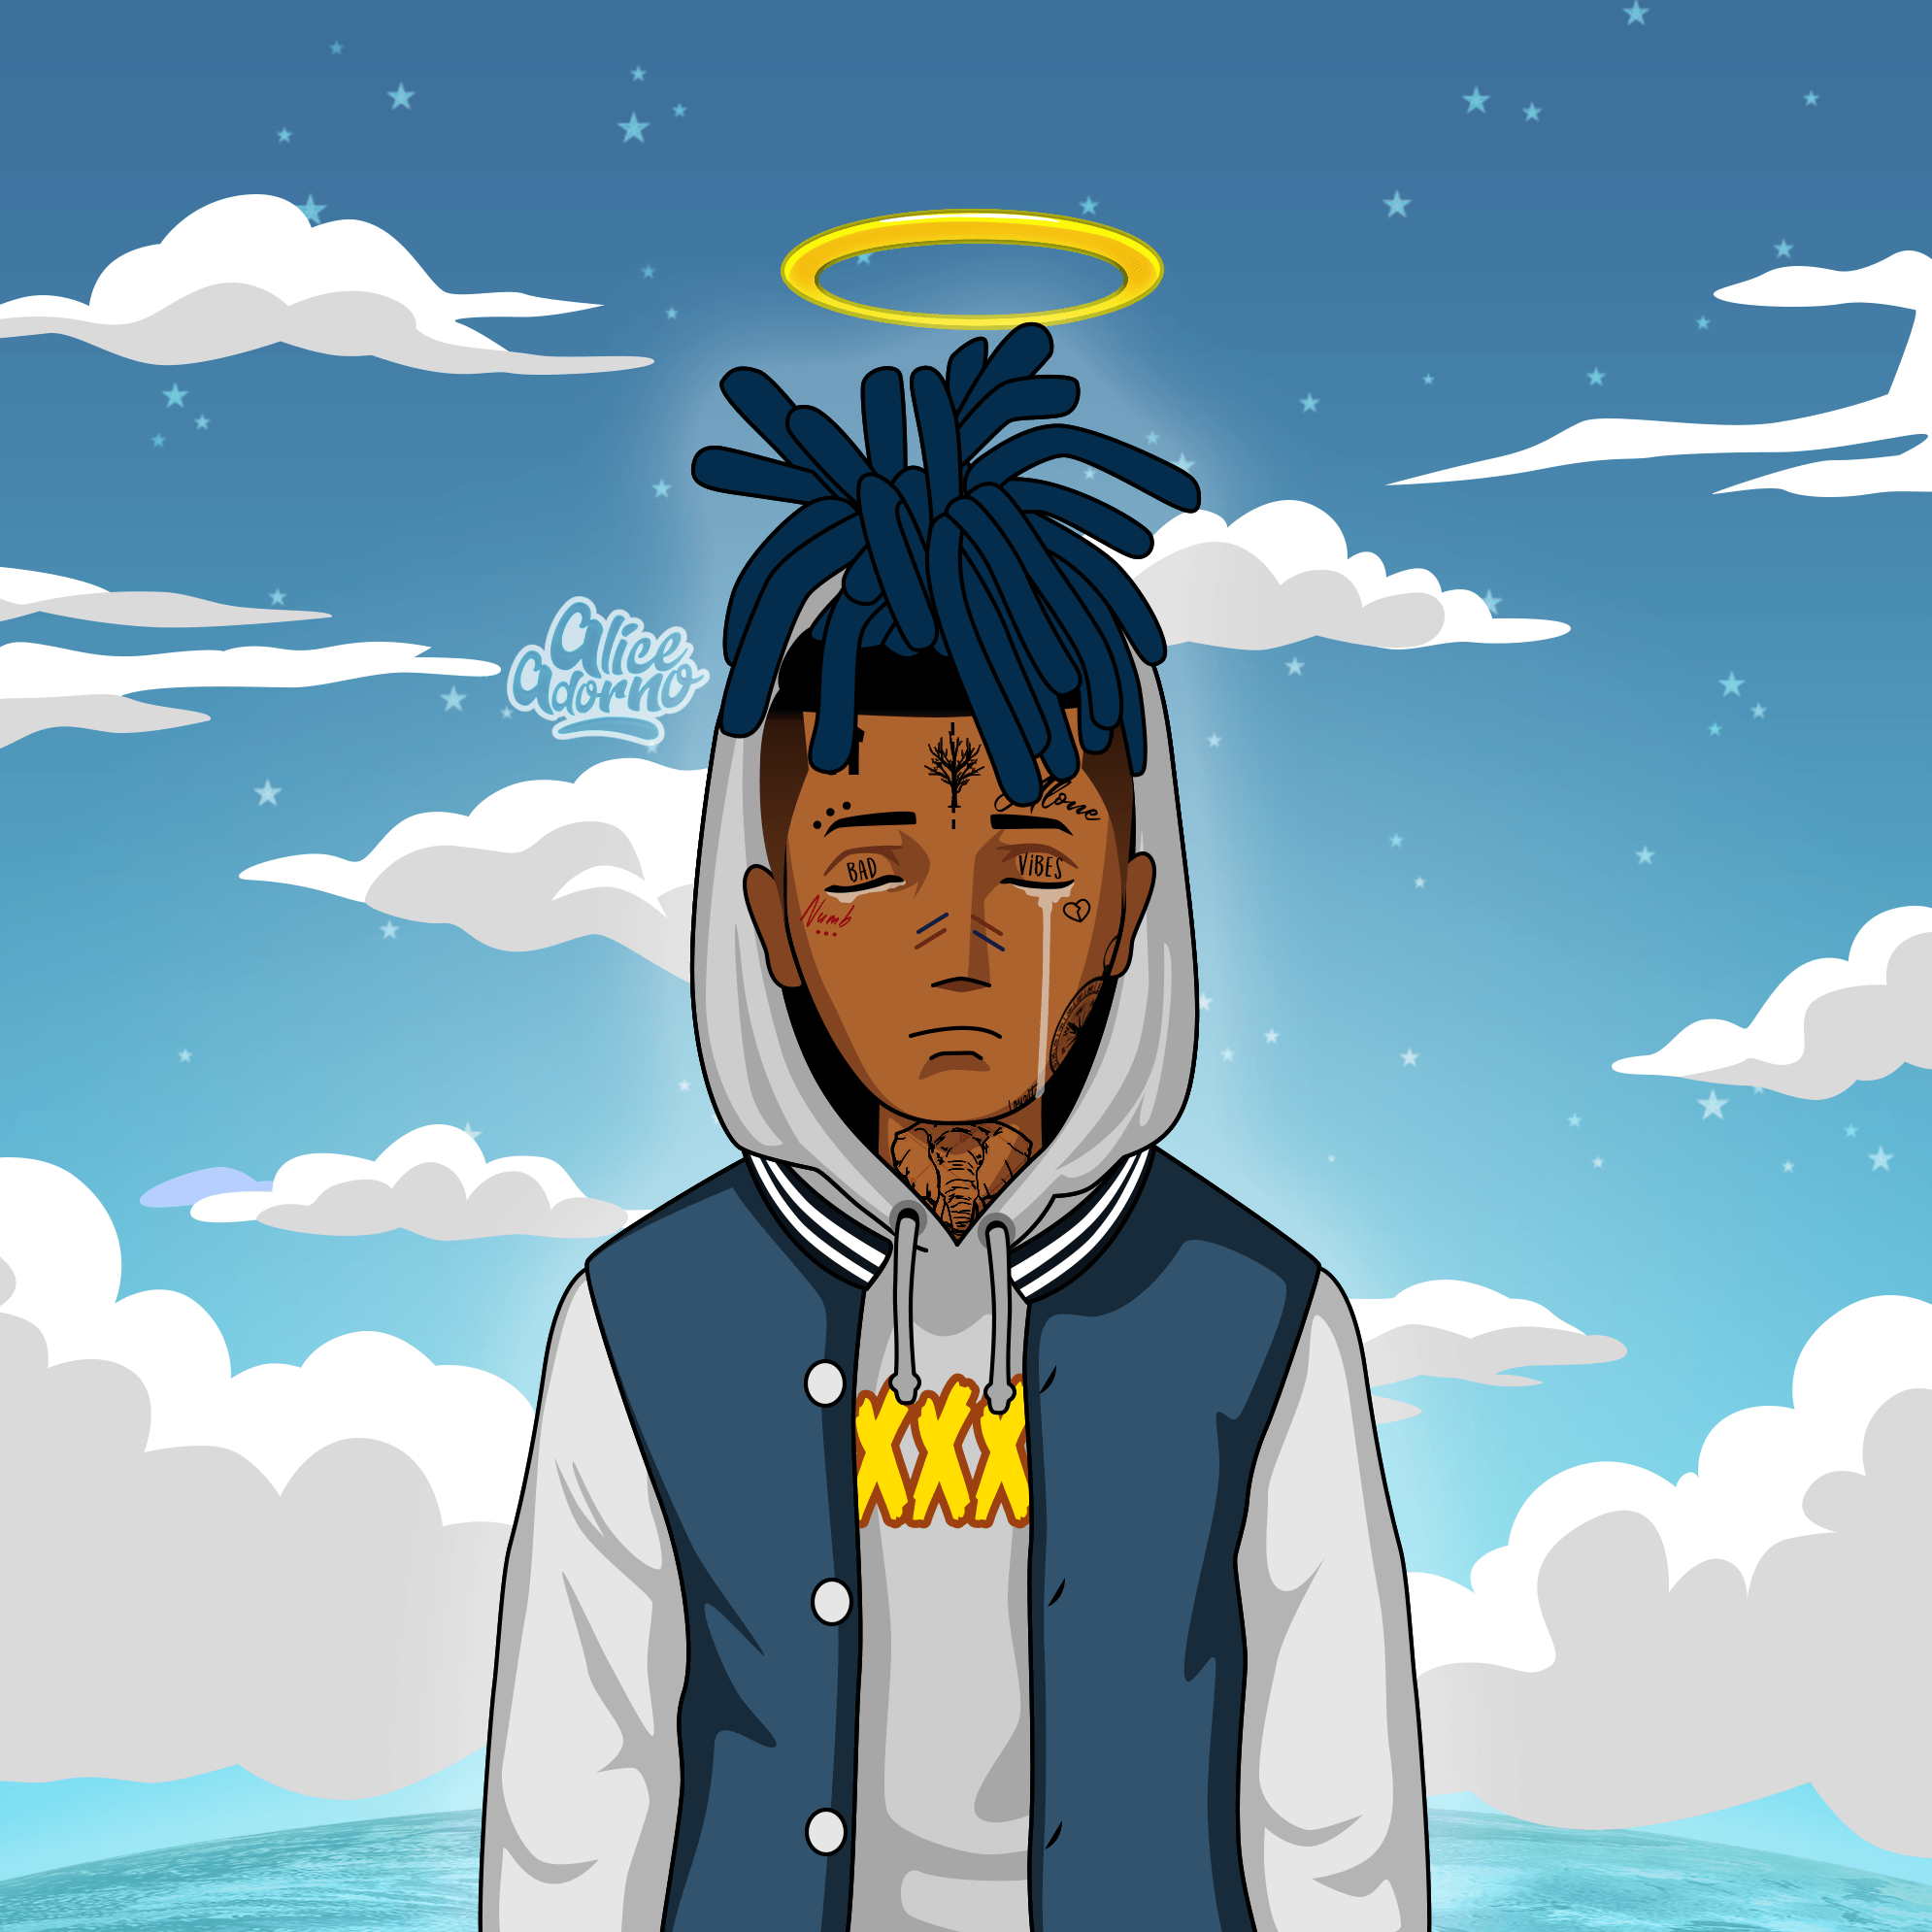 1990x1990 Pin by Jacob Veiru on Wallpaper | Rapper, Love you forever, Miss you